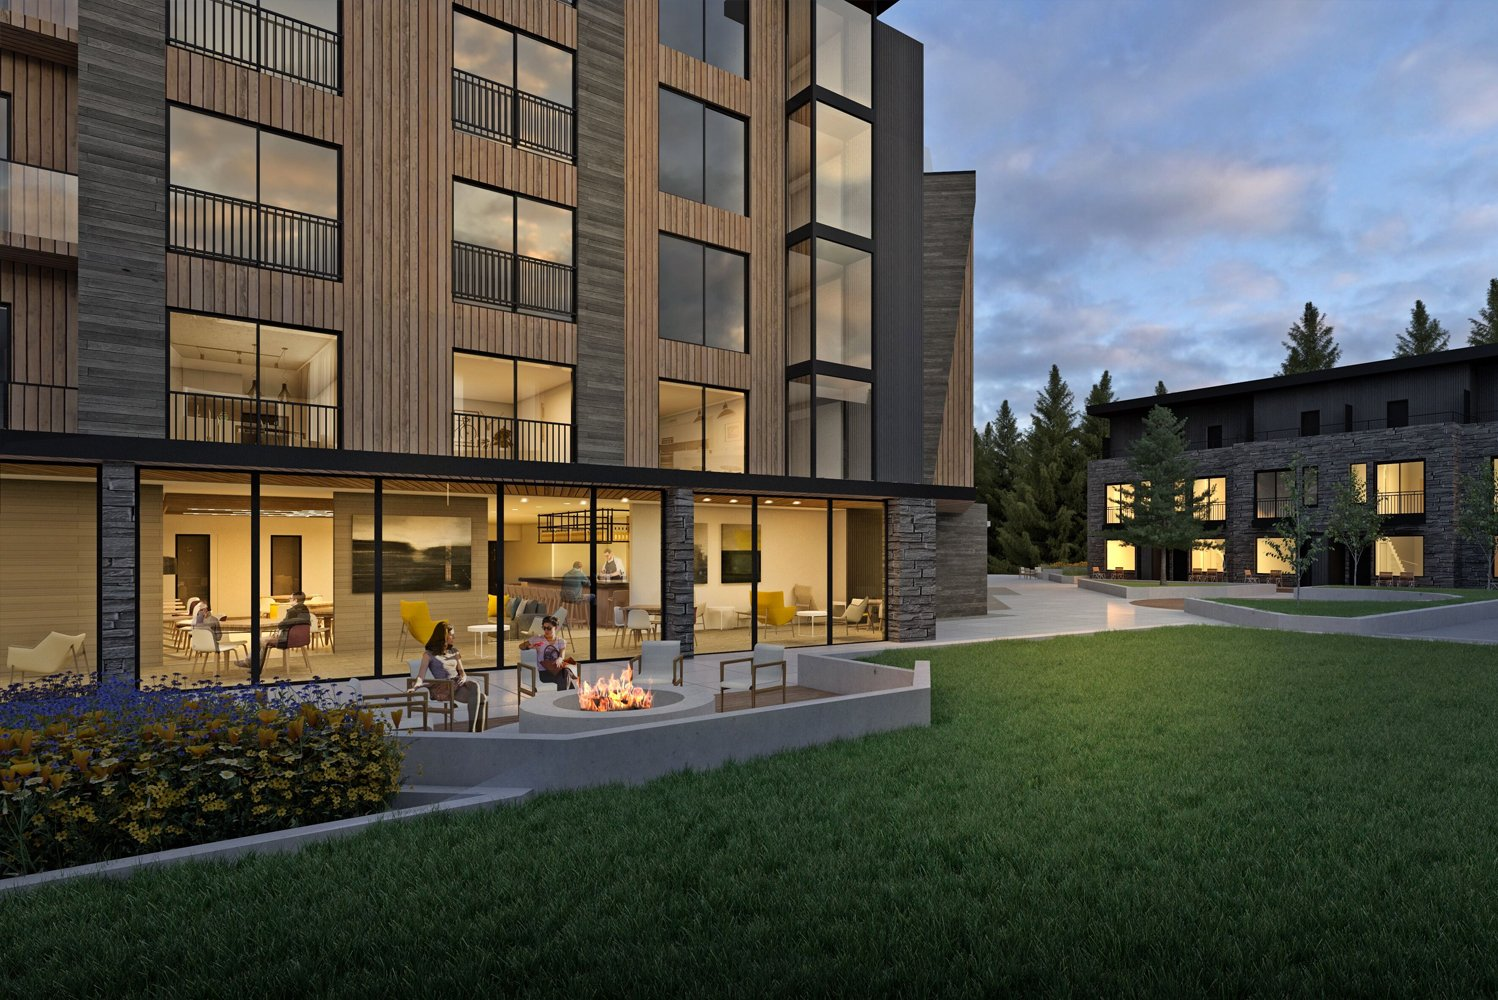 The property will have a seamless indoor-outdoor experience for owners and guest.